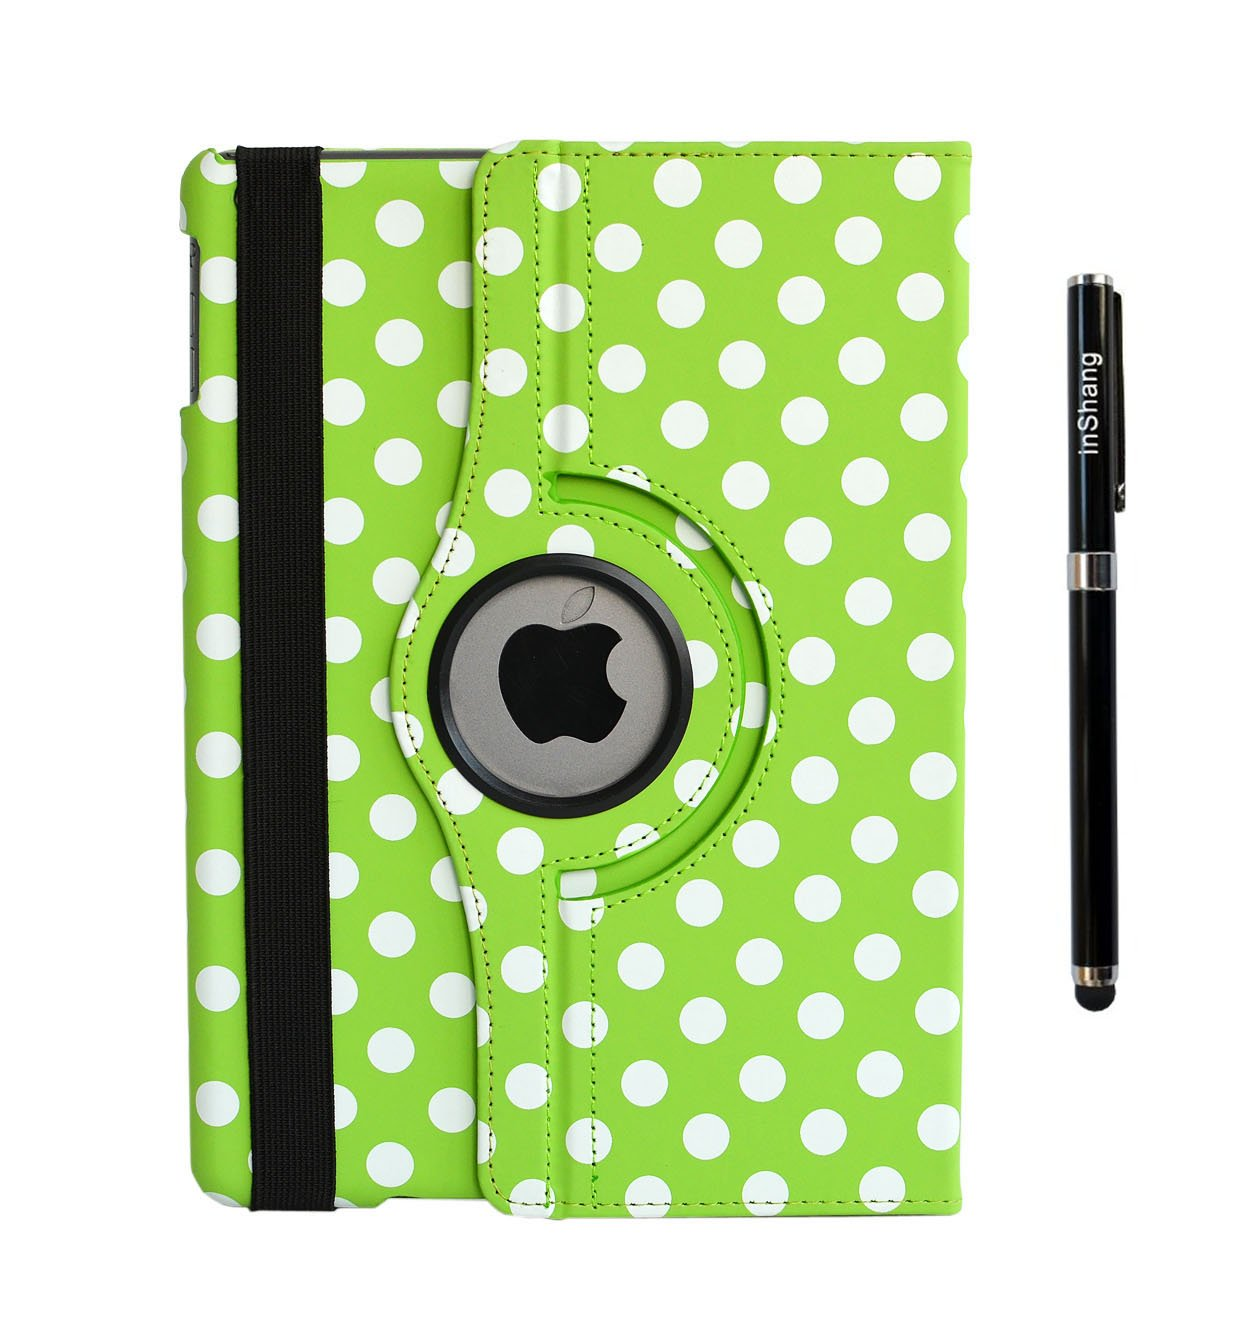 inShang Case for ipad mini 3 mini 2 mini 1, 7.9 retina display, Premium PU Leather Multi-Function Stand Cover 360 degree Rotation, With Auto Sleep Wake Function+1pc High end class business stylus Pen 7.9 retina display